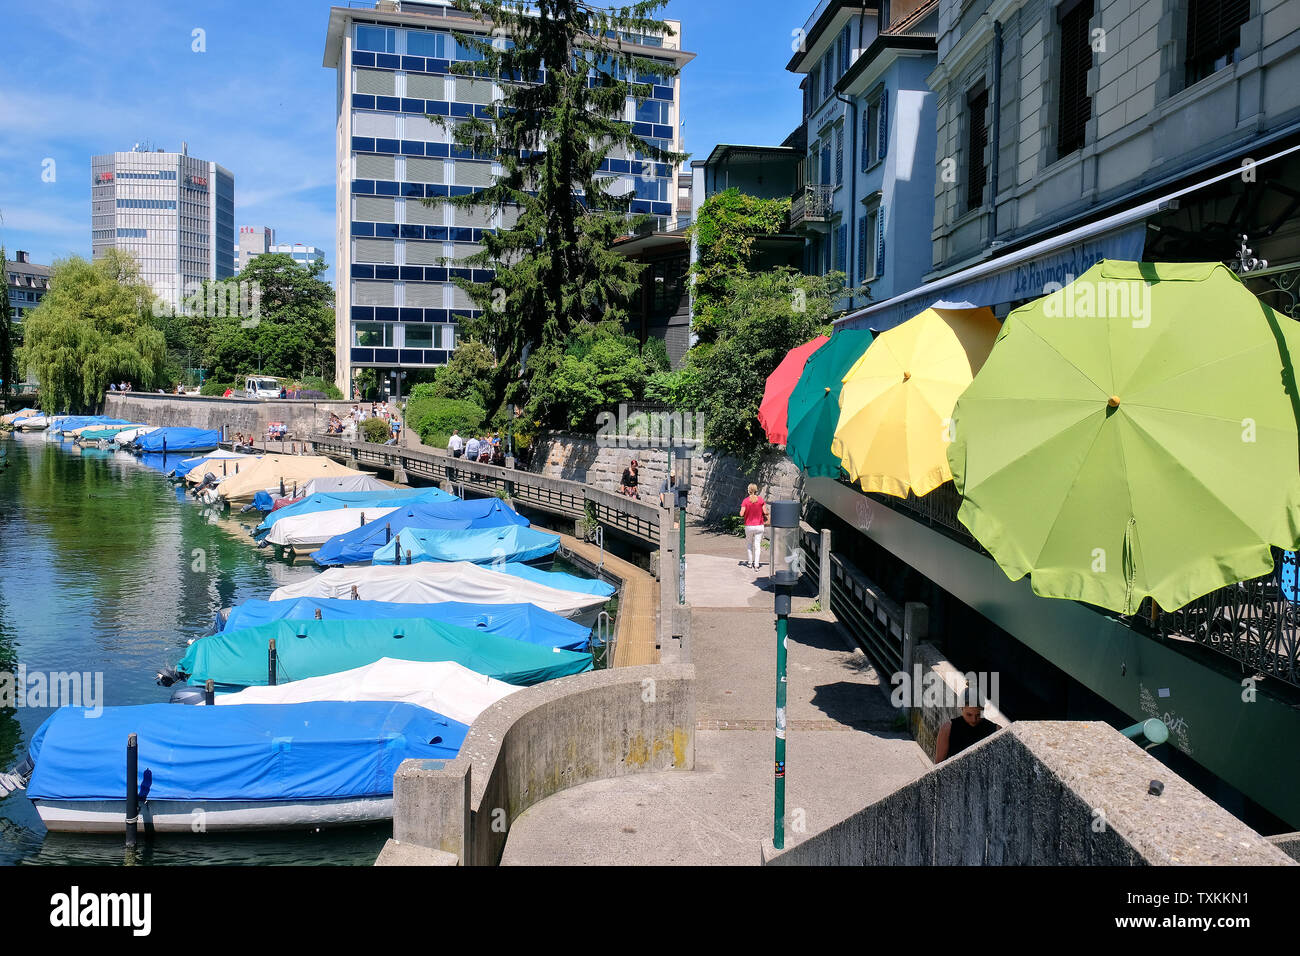 Schanzengraben promenade with covered boats and colourful parasols of Cafe Bar Le Raymond Bar, Zurich. Stock Photo